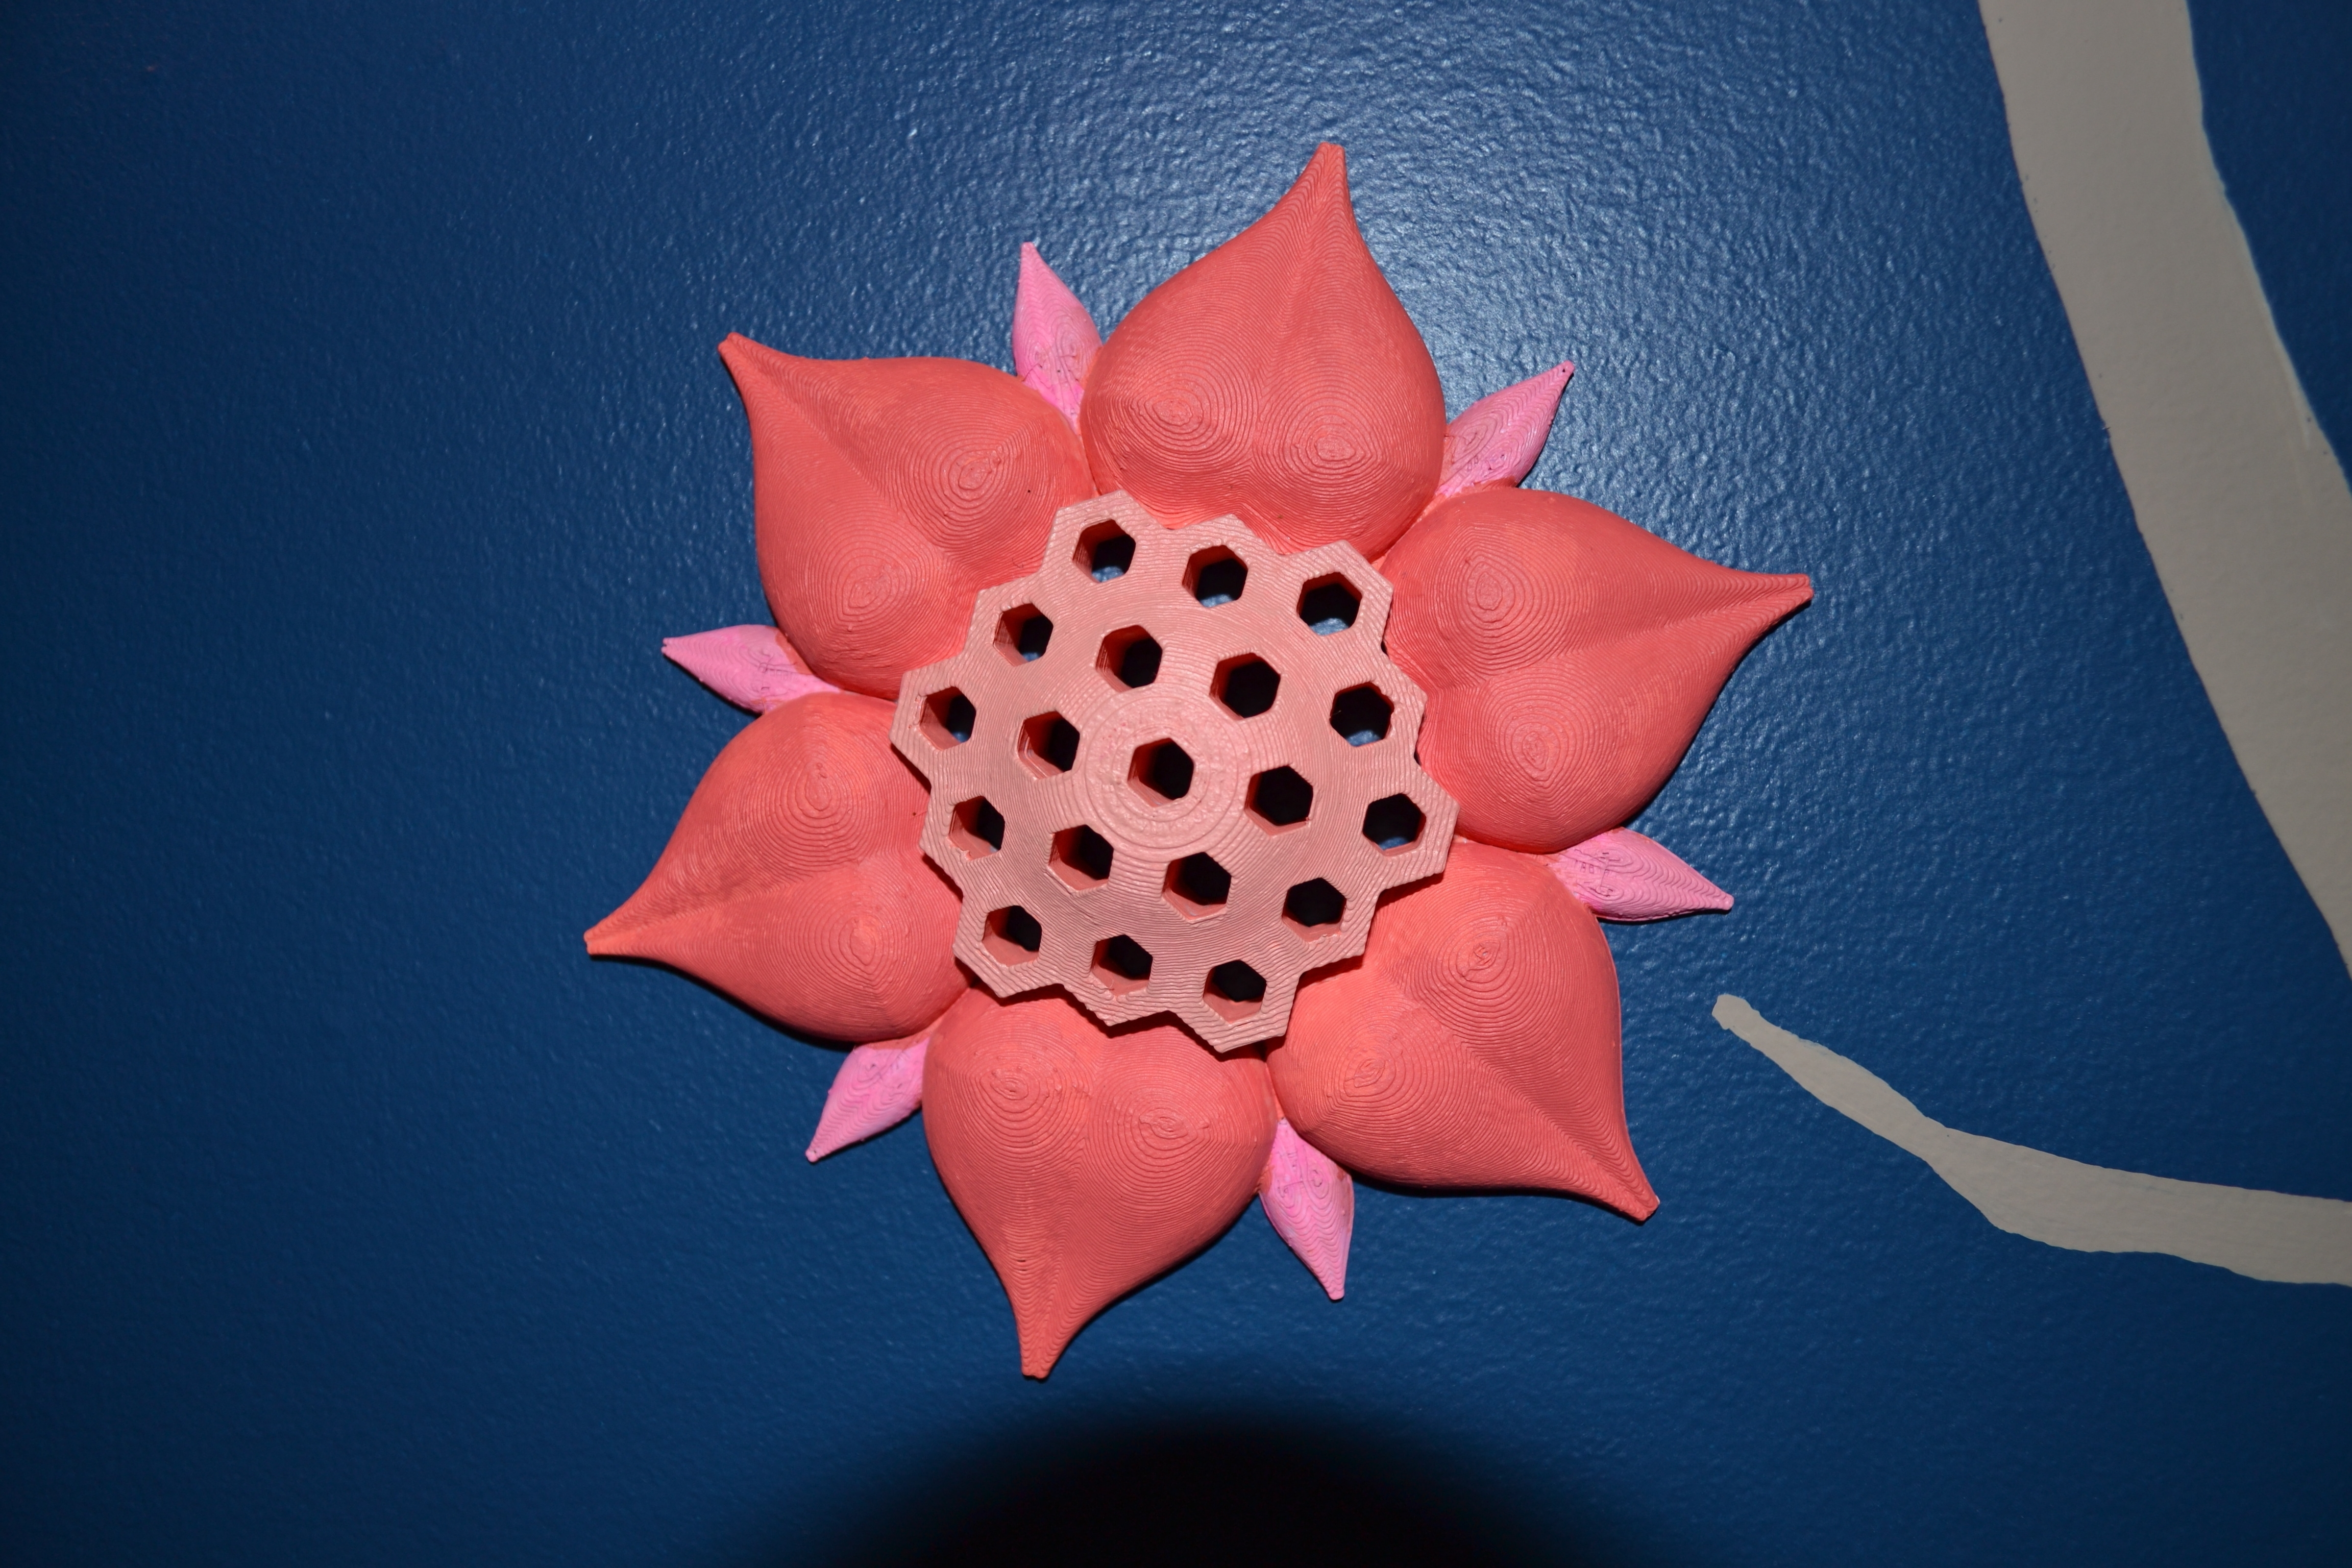 Fashionable 3D Printed Honey Comb Flower Wall Artconcept 2 Creation (Gallery 18 of 20)